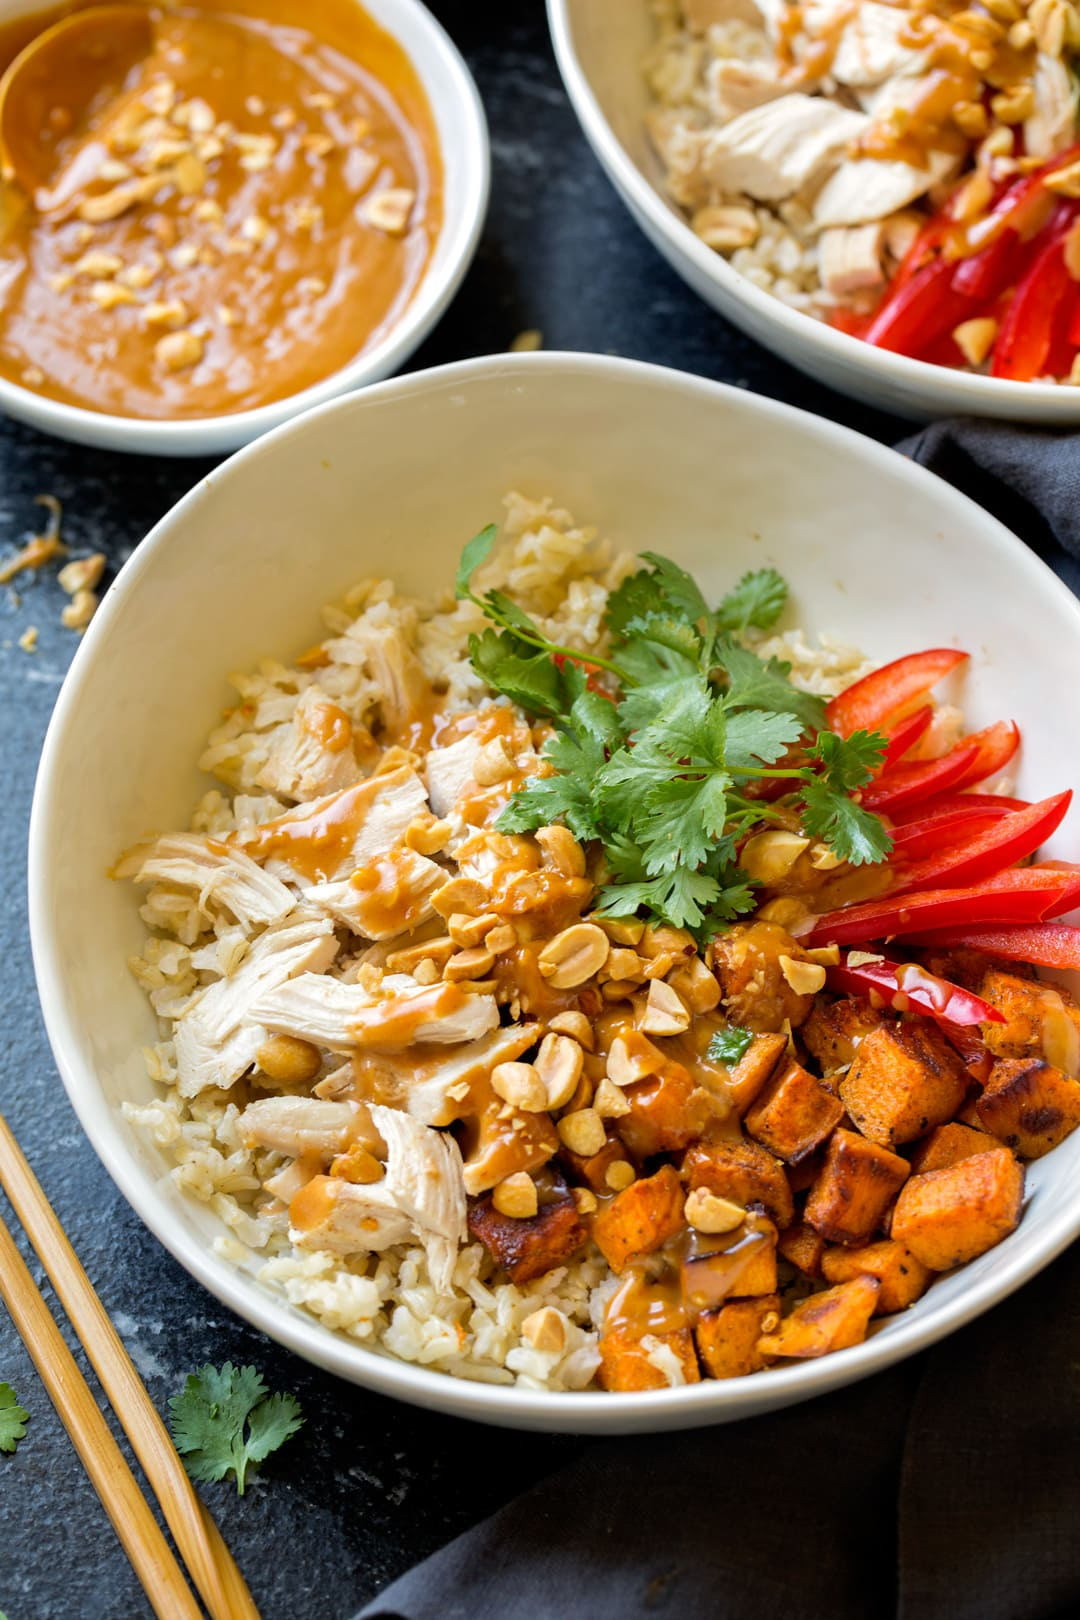 Chicken Bowls Veggies Brown Rice and Peanut Sauce